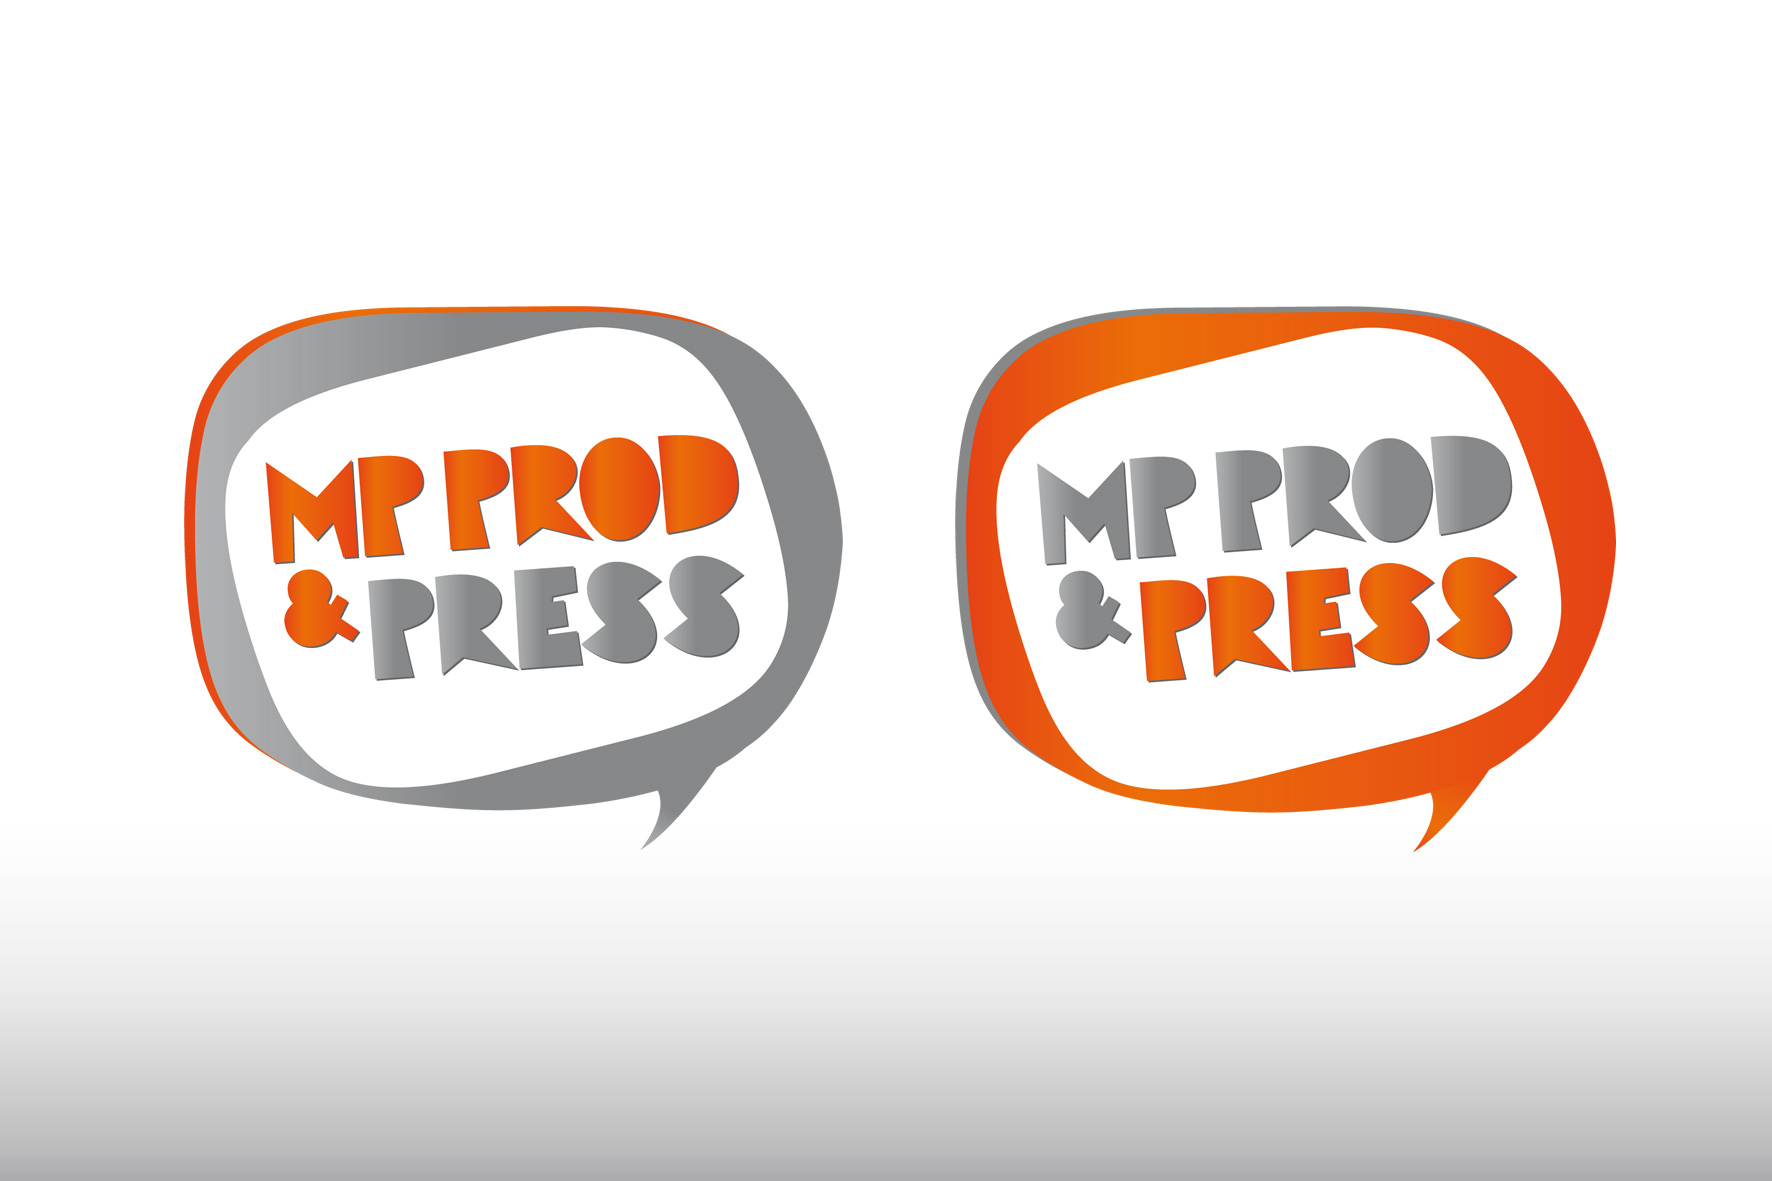 MP Prod & Press